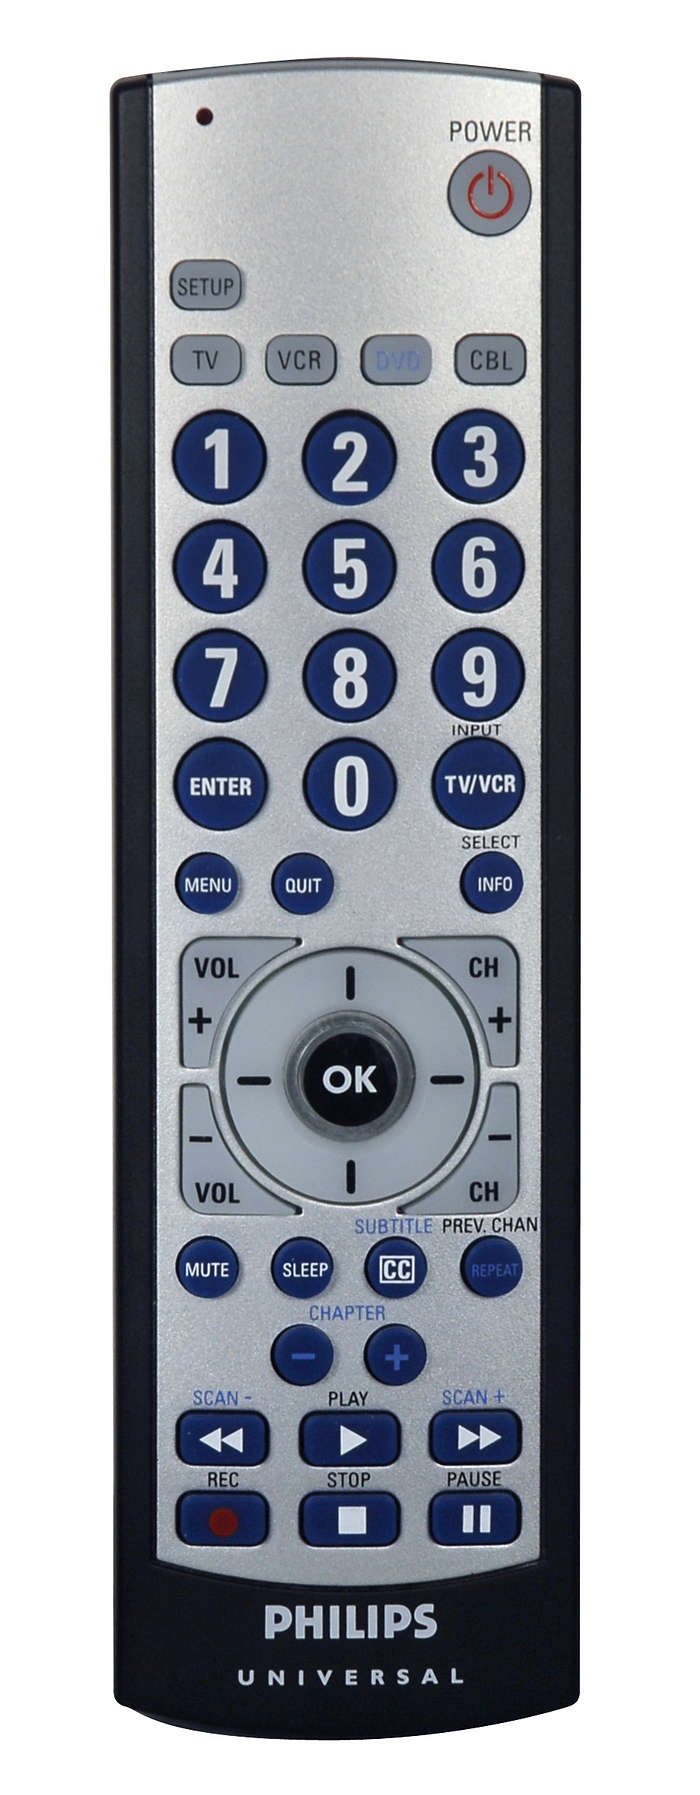 Ideal replacement for your lost or broken remote